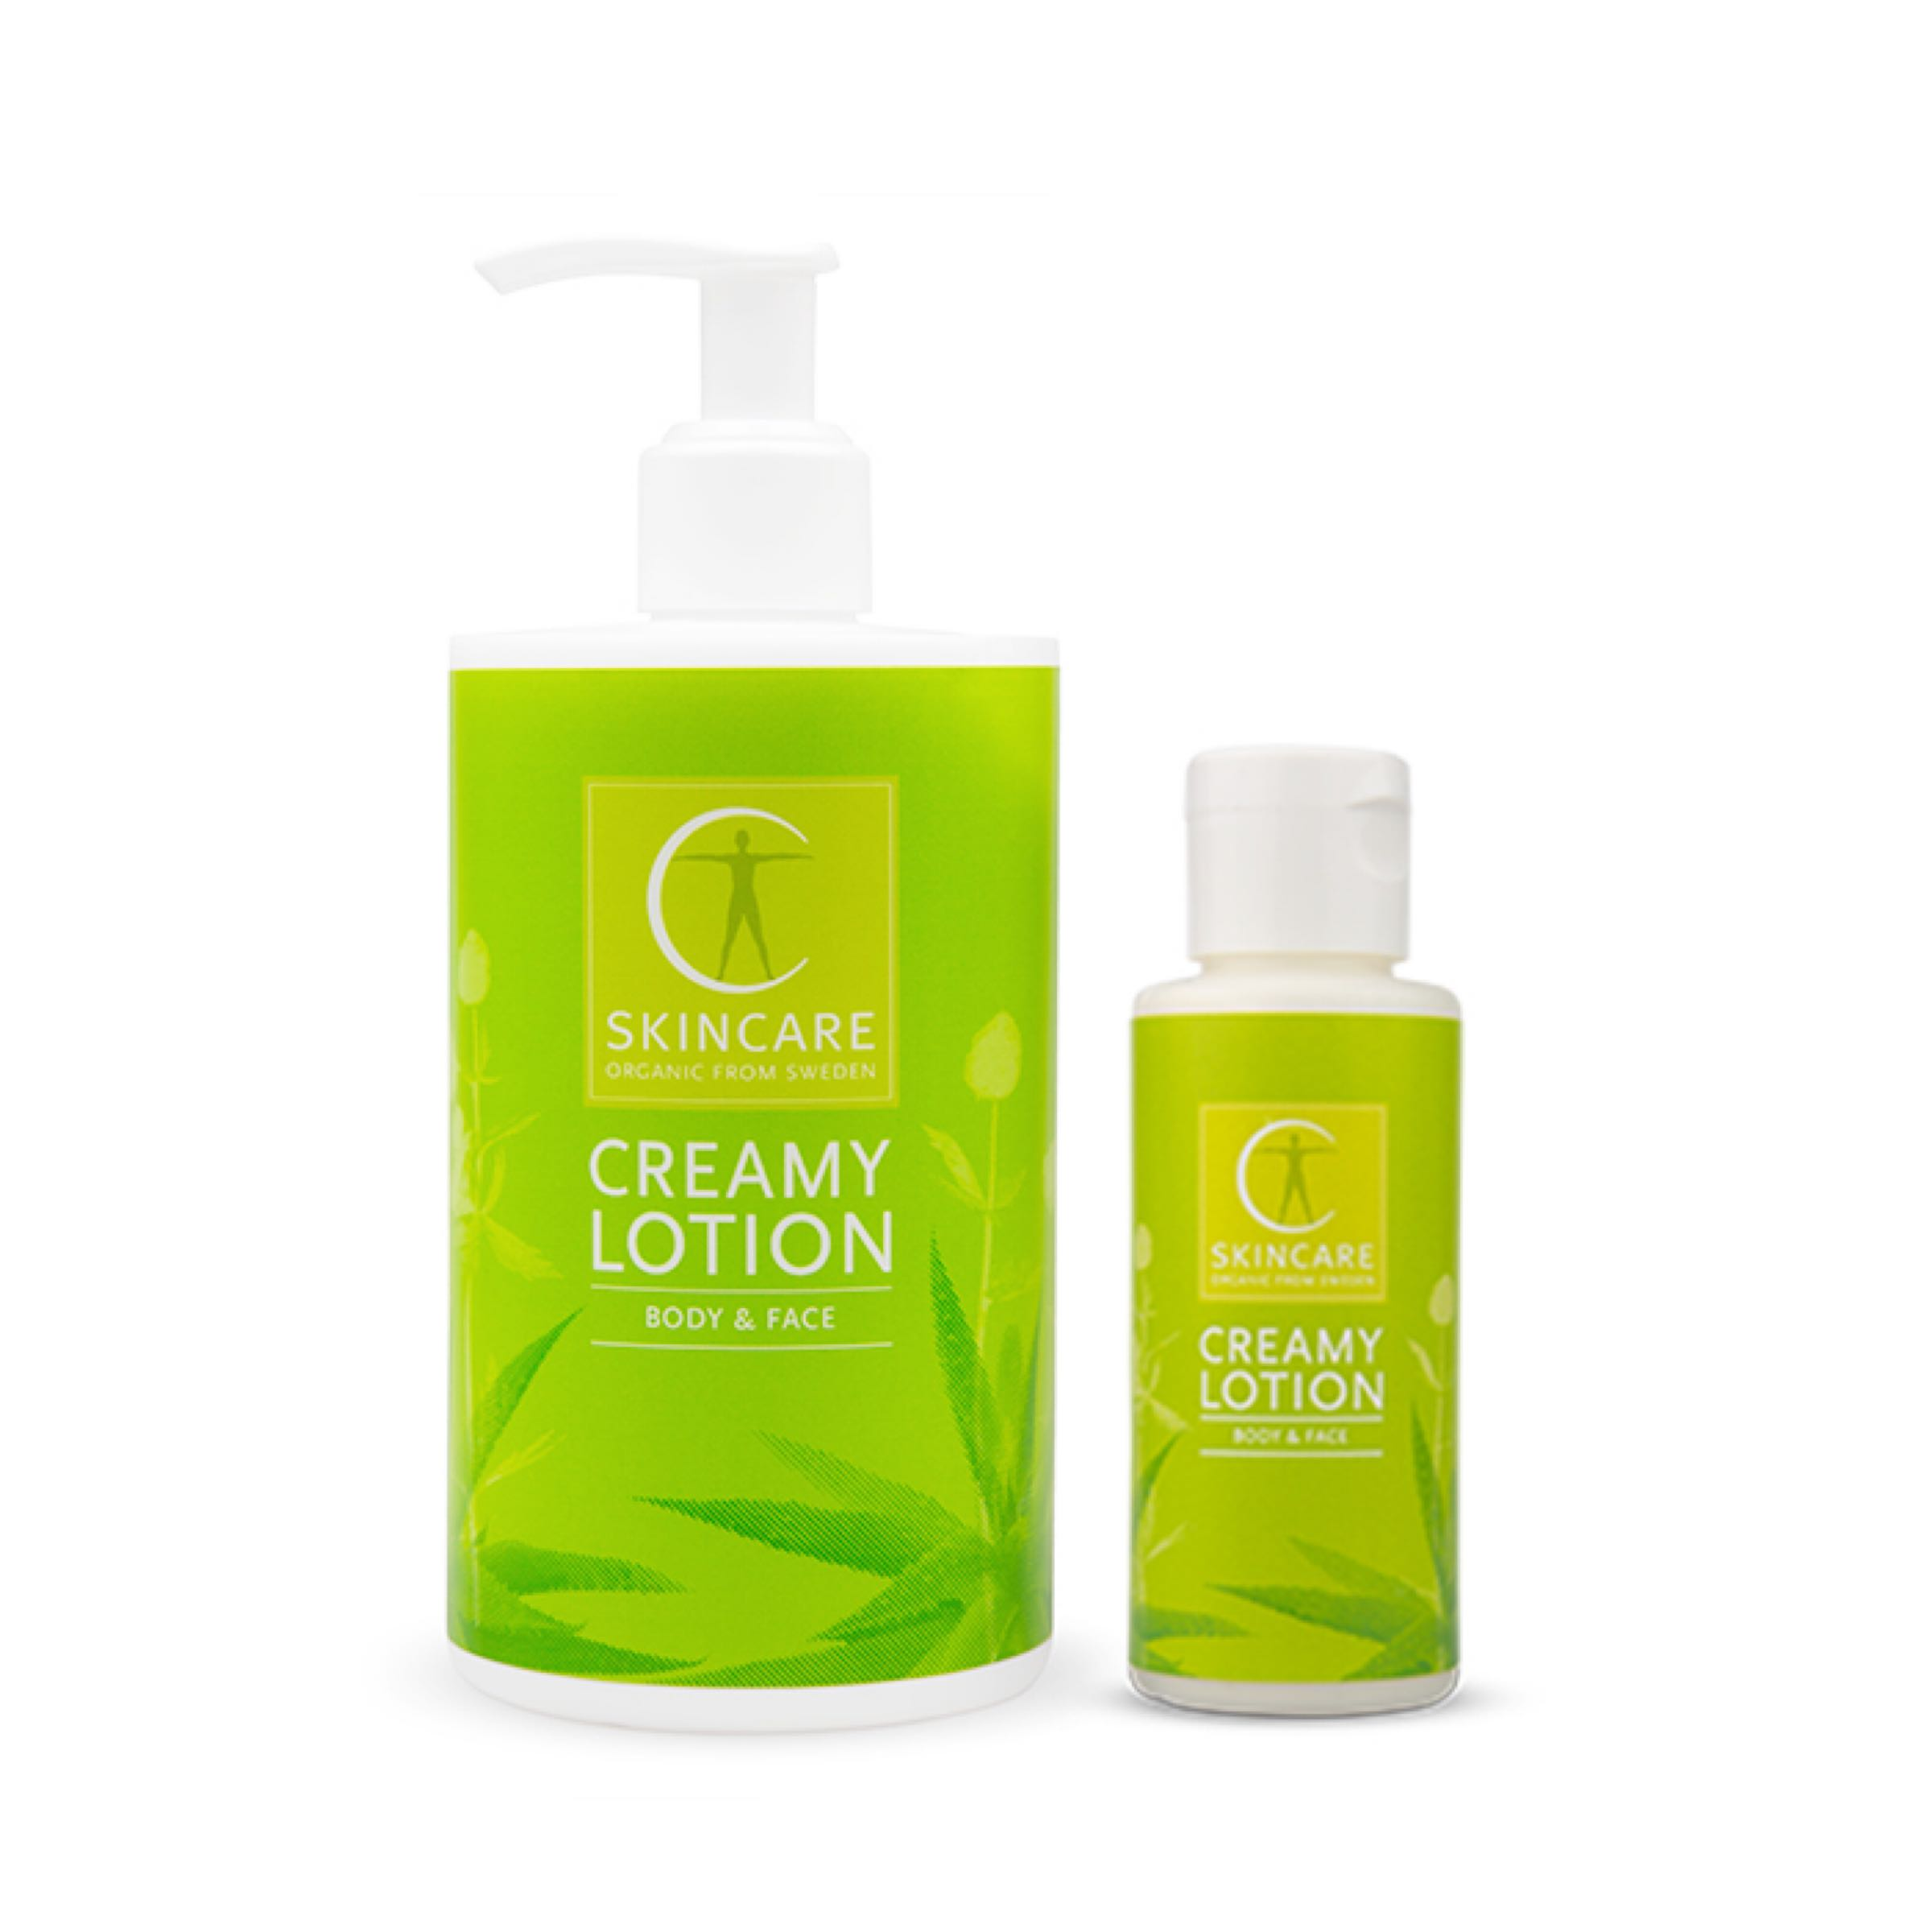 C Skincare - Creamy Lotion – body, hands & feet